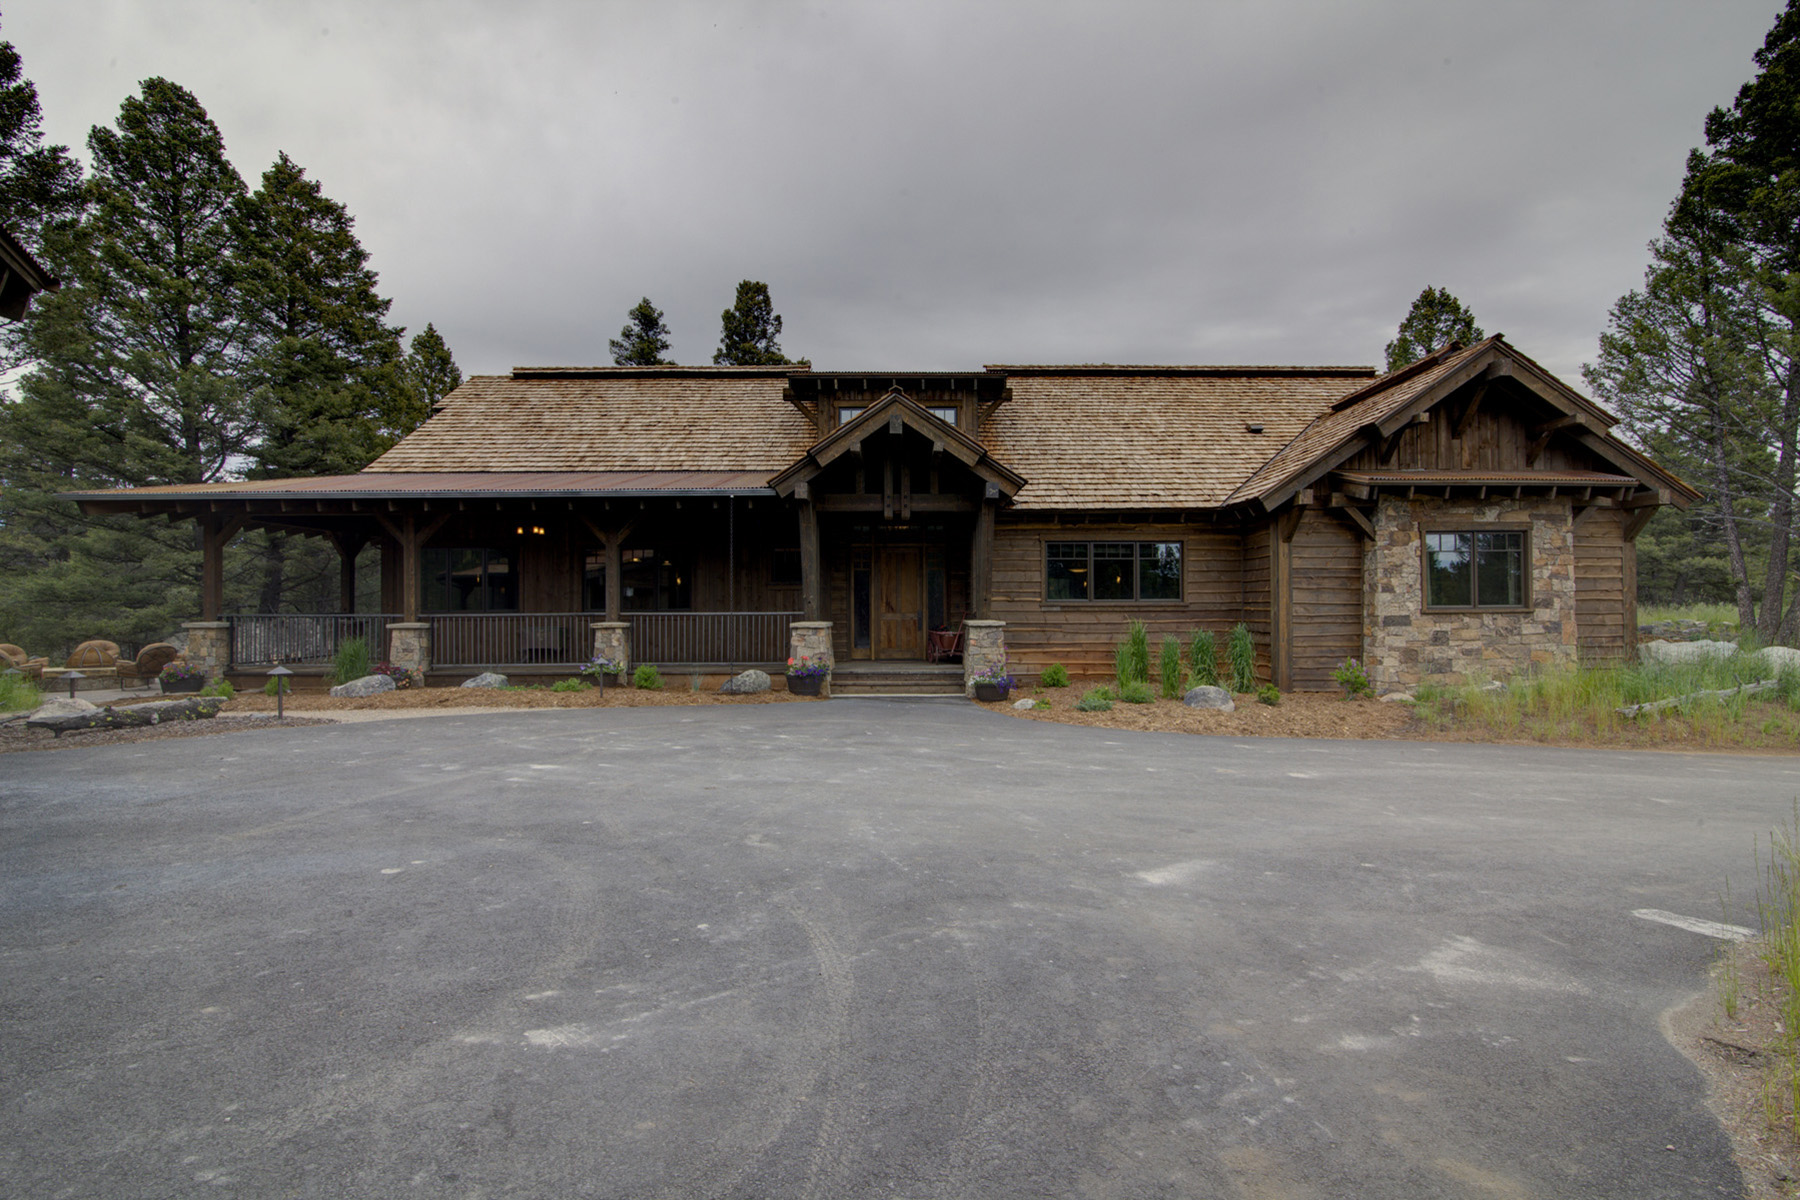 Additional photo for property listing at 1129 Pauly Ln , Deer Lodge, MT 59722 1129  Pauly Ln Deer Lodge, Montana 59722 United States